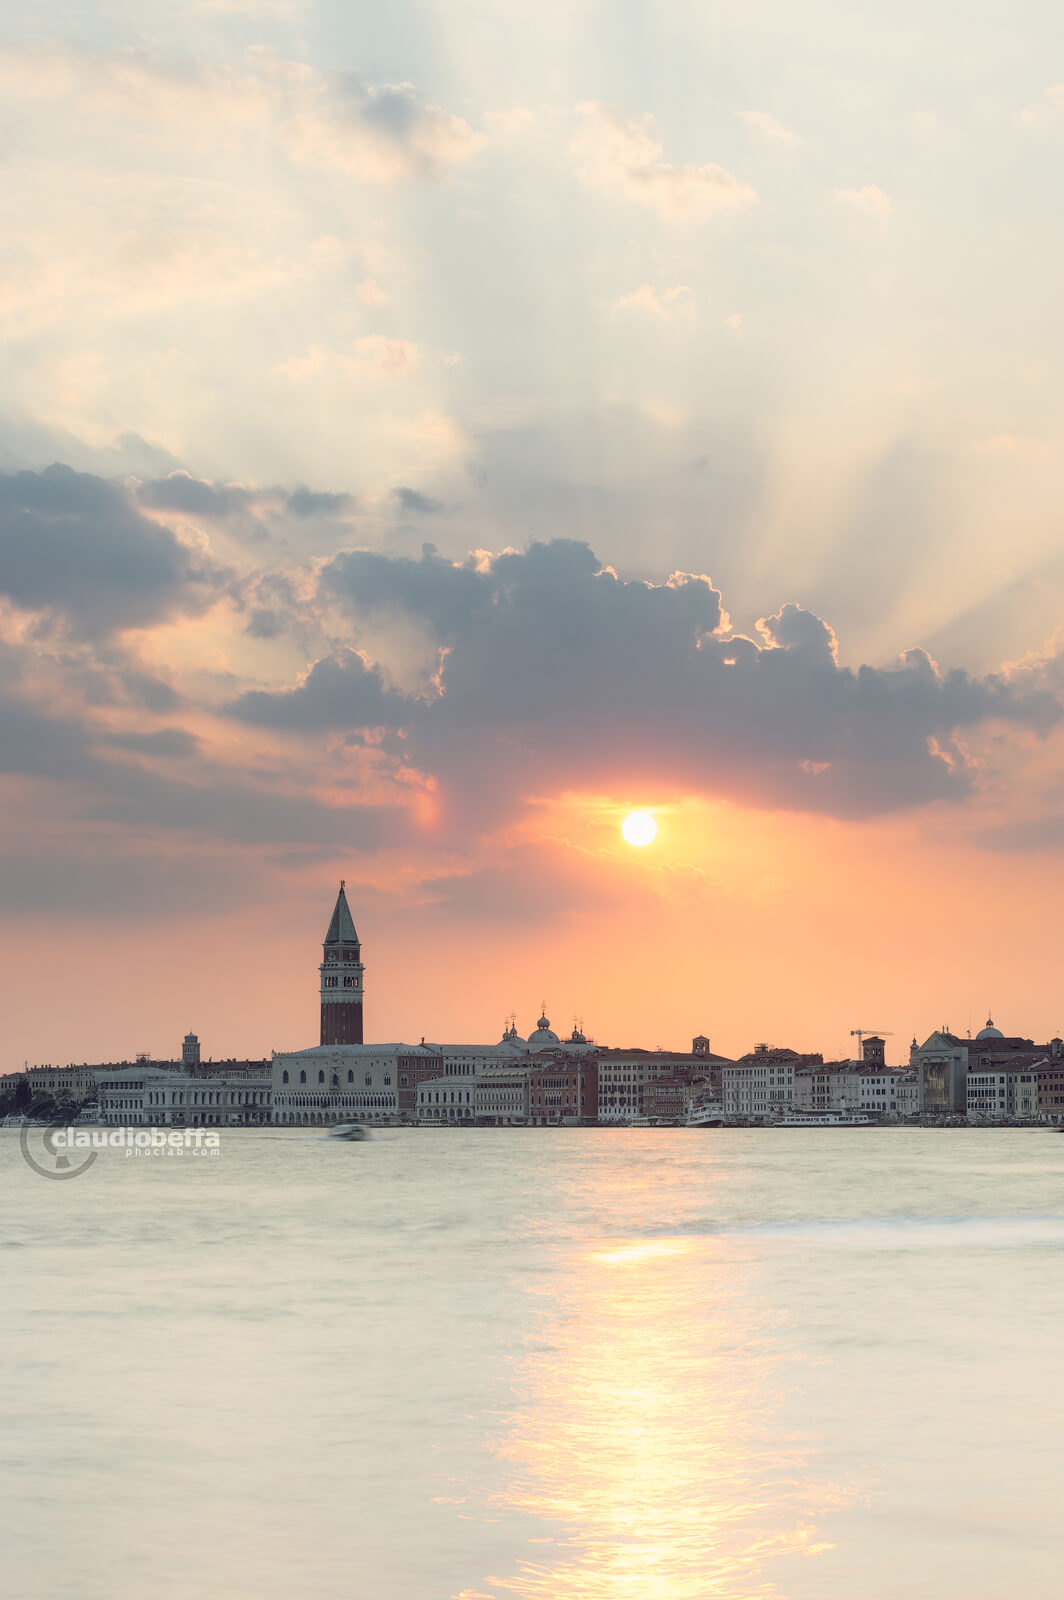 Sunset, Mirage of Venice, Venice, Venezia, Italia, San Marco, Riva degli Schiavoni, Lagoon, Water, Reflections, Bursts of light, Painterly, Colors